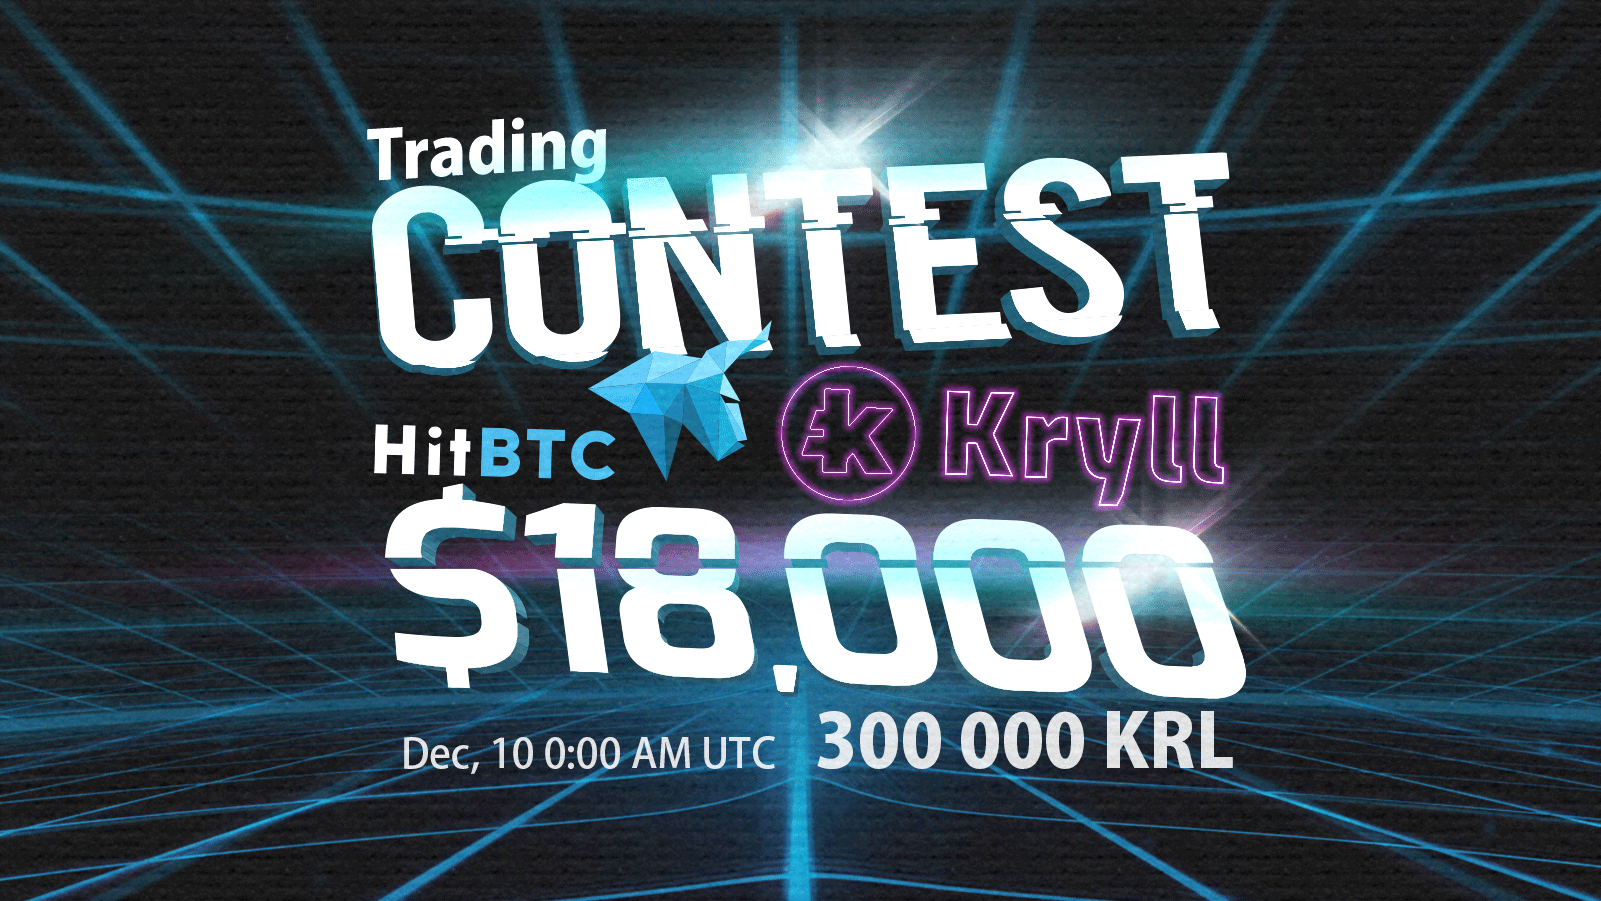 $18,000 to win in a Kryll (KRL) Trading Competition with HitBTC Crypto Exchange